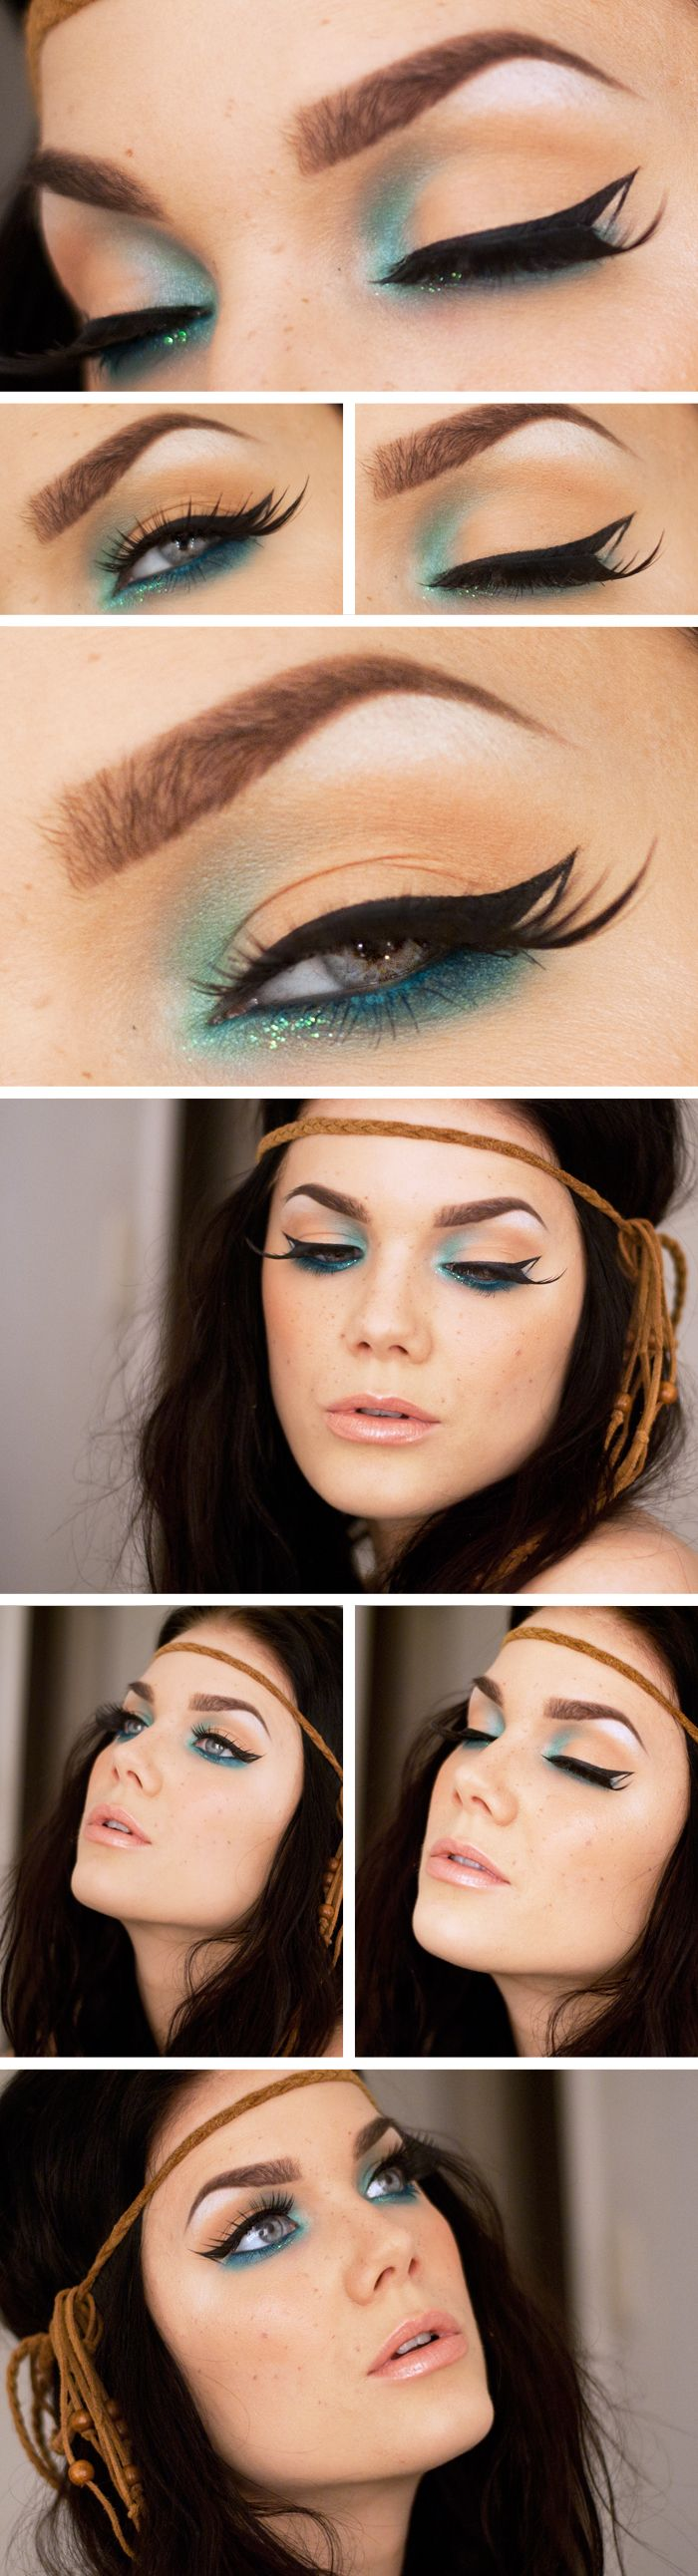 Gorgeous! I definitely want to try this!